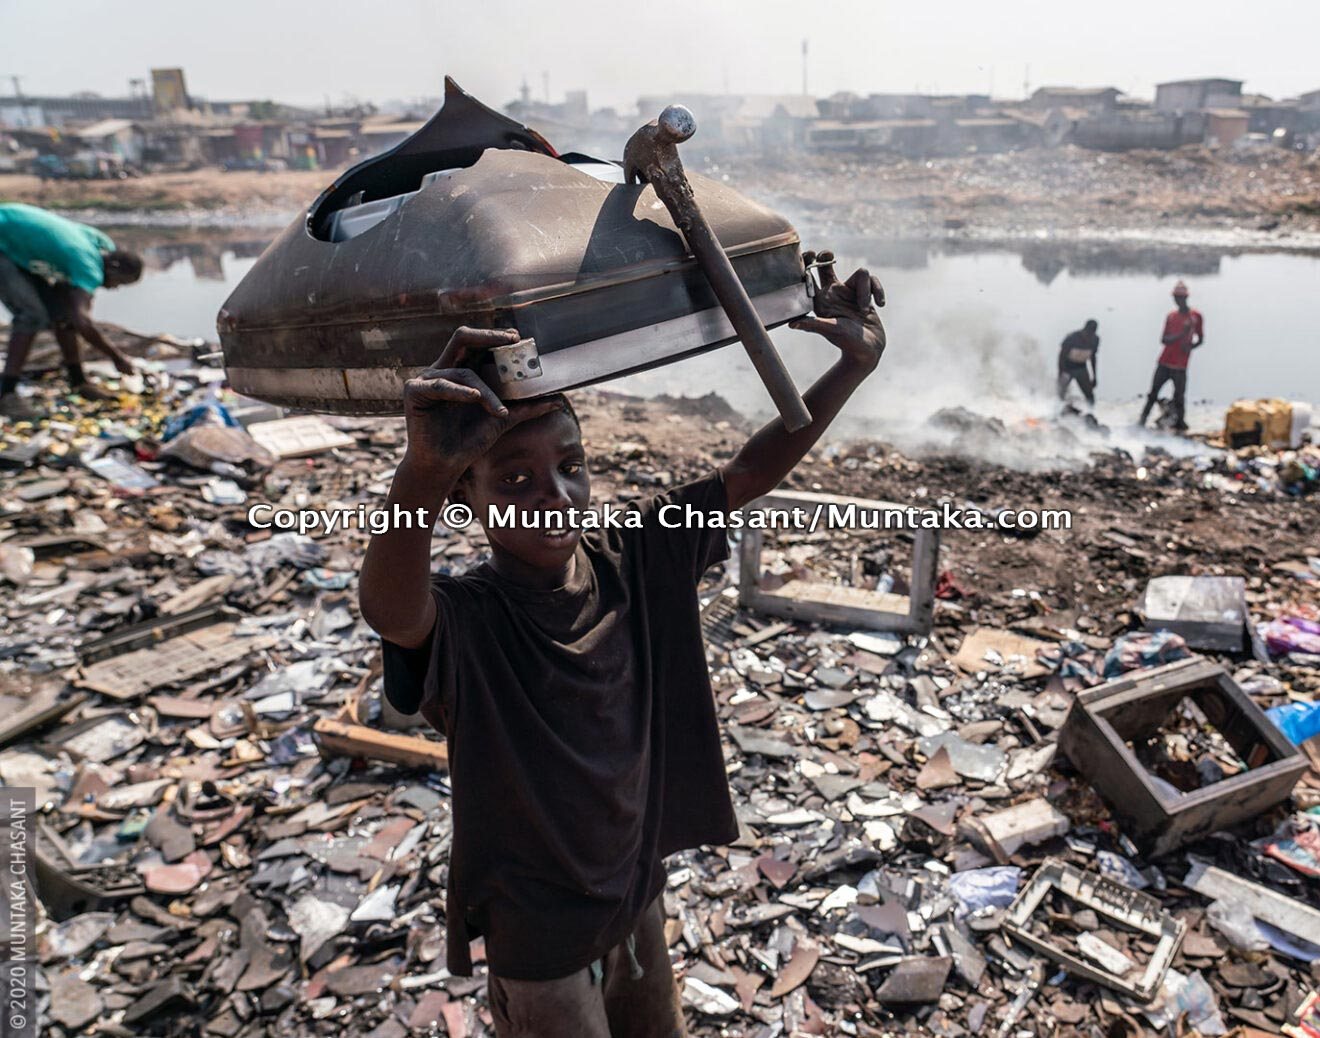 Hazardous child labour: A 12 years old boy carries a cathode-ray tube-based TV on the head. He used a hammer to break it apart for the iron materials inside. An estimated 152 children worldwide between 5 and 17 years are in child labour. © 2020 Muntaka Chasant